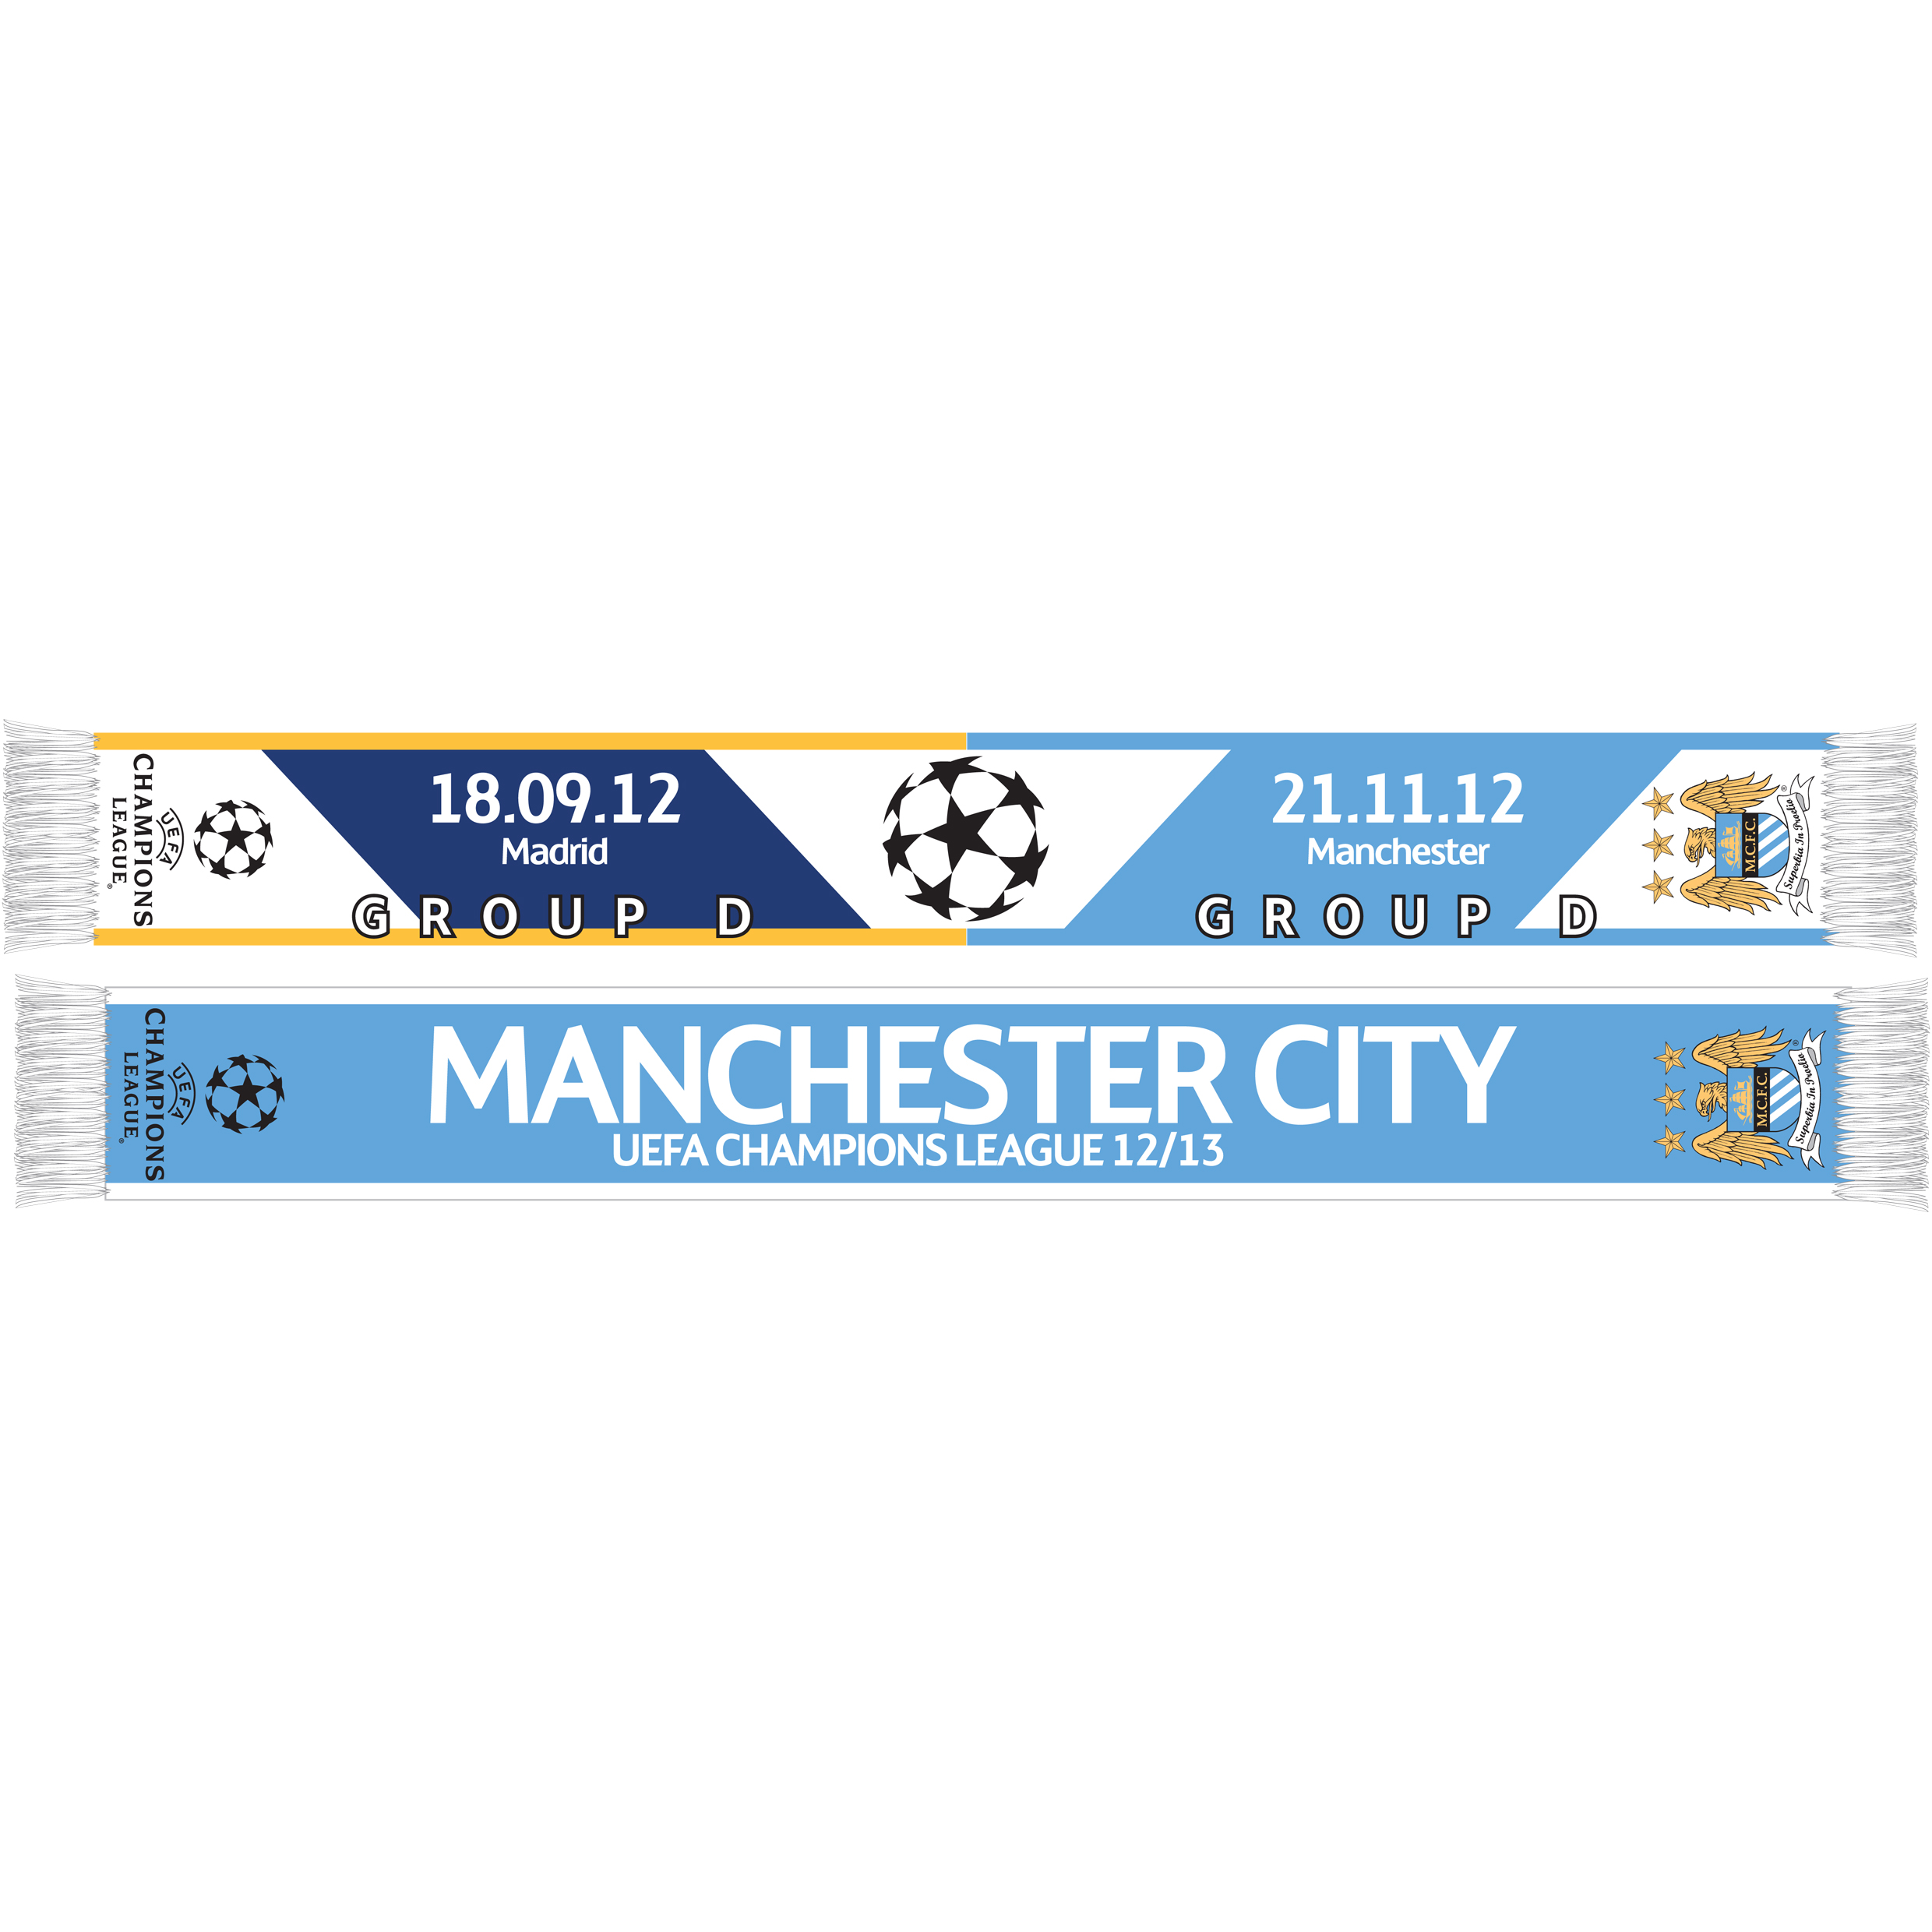 Manchester City Champions League Friendship Scarf - Real Madrid